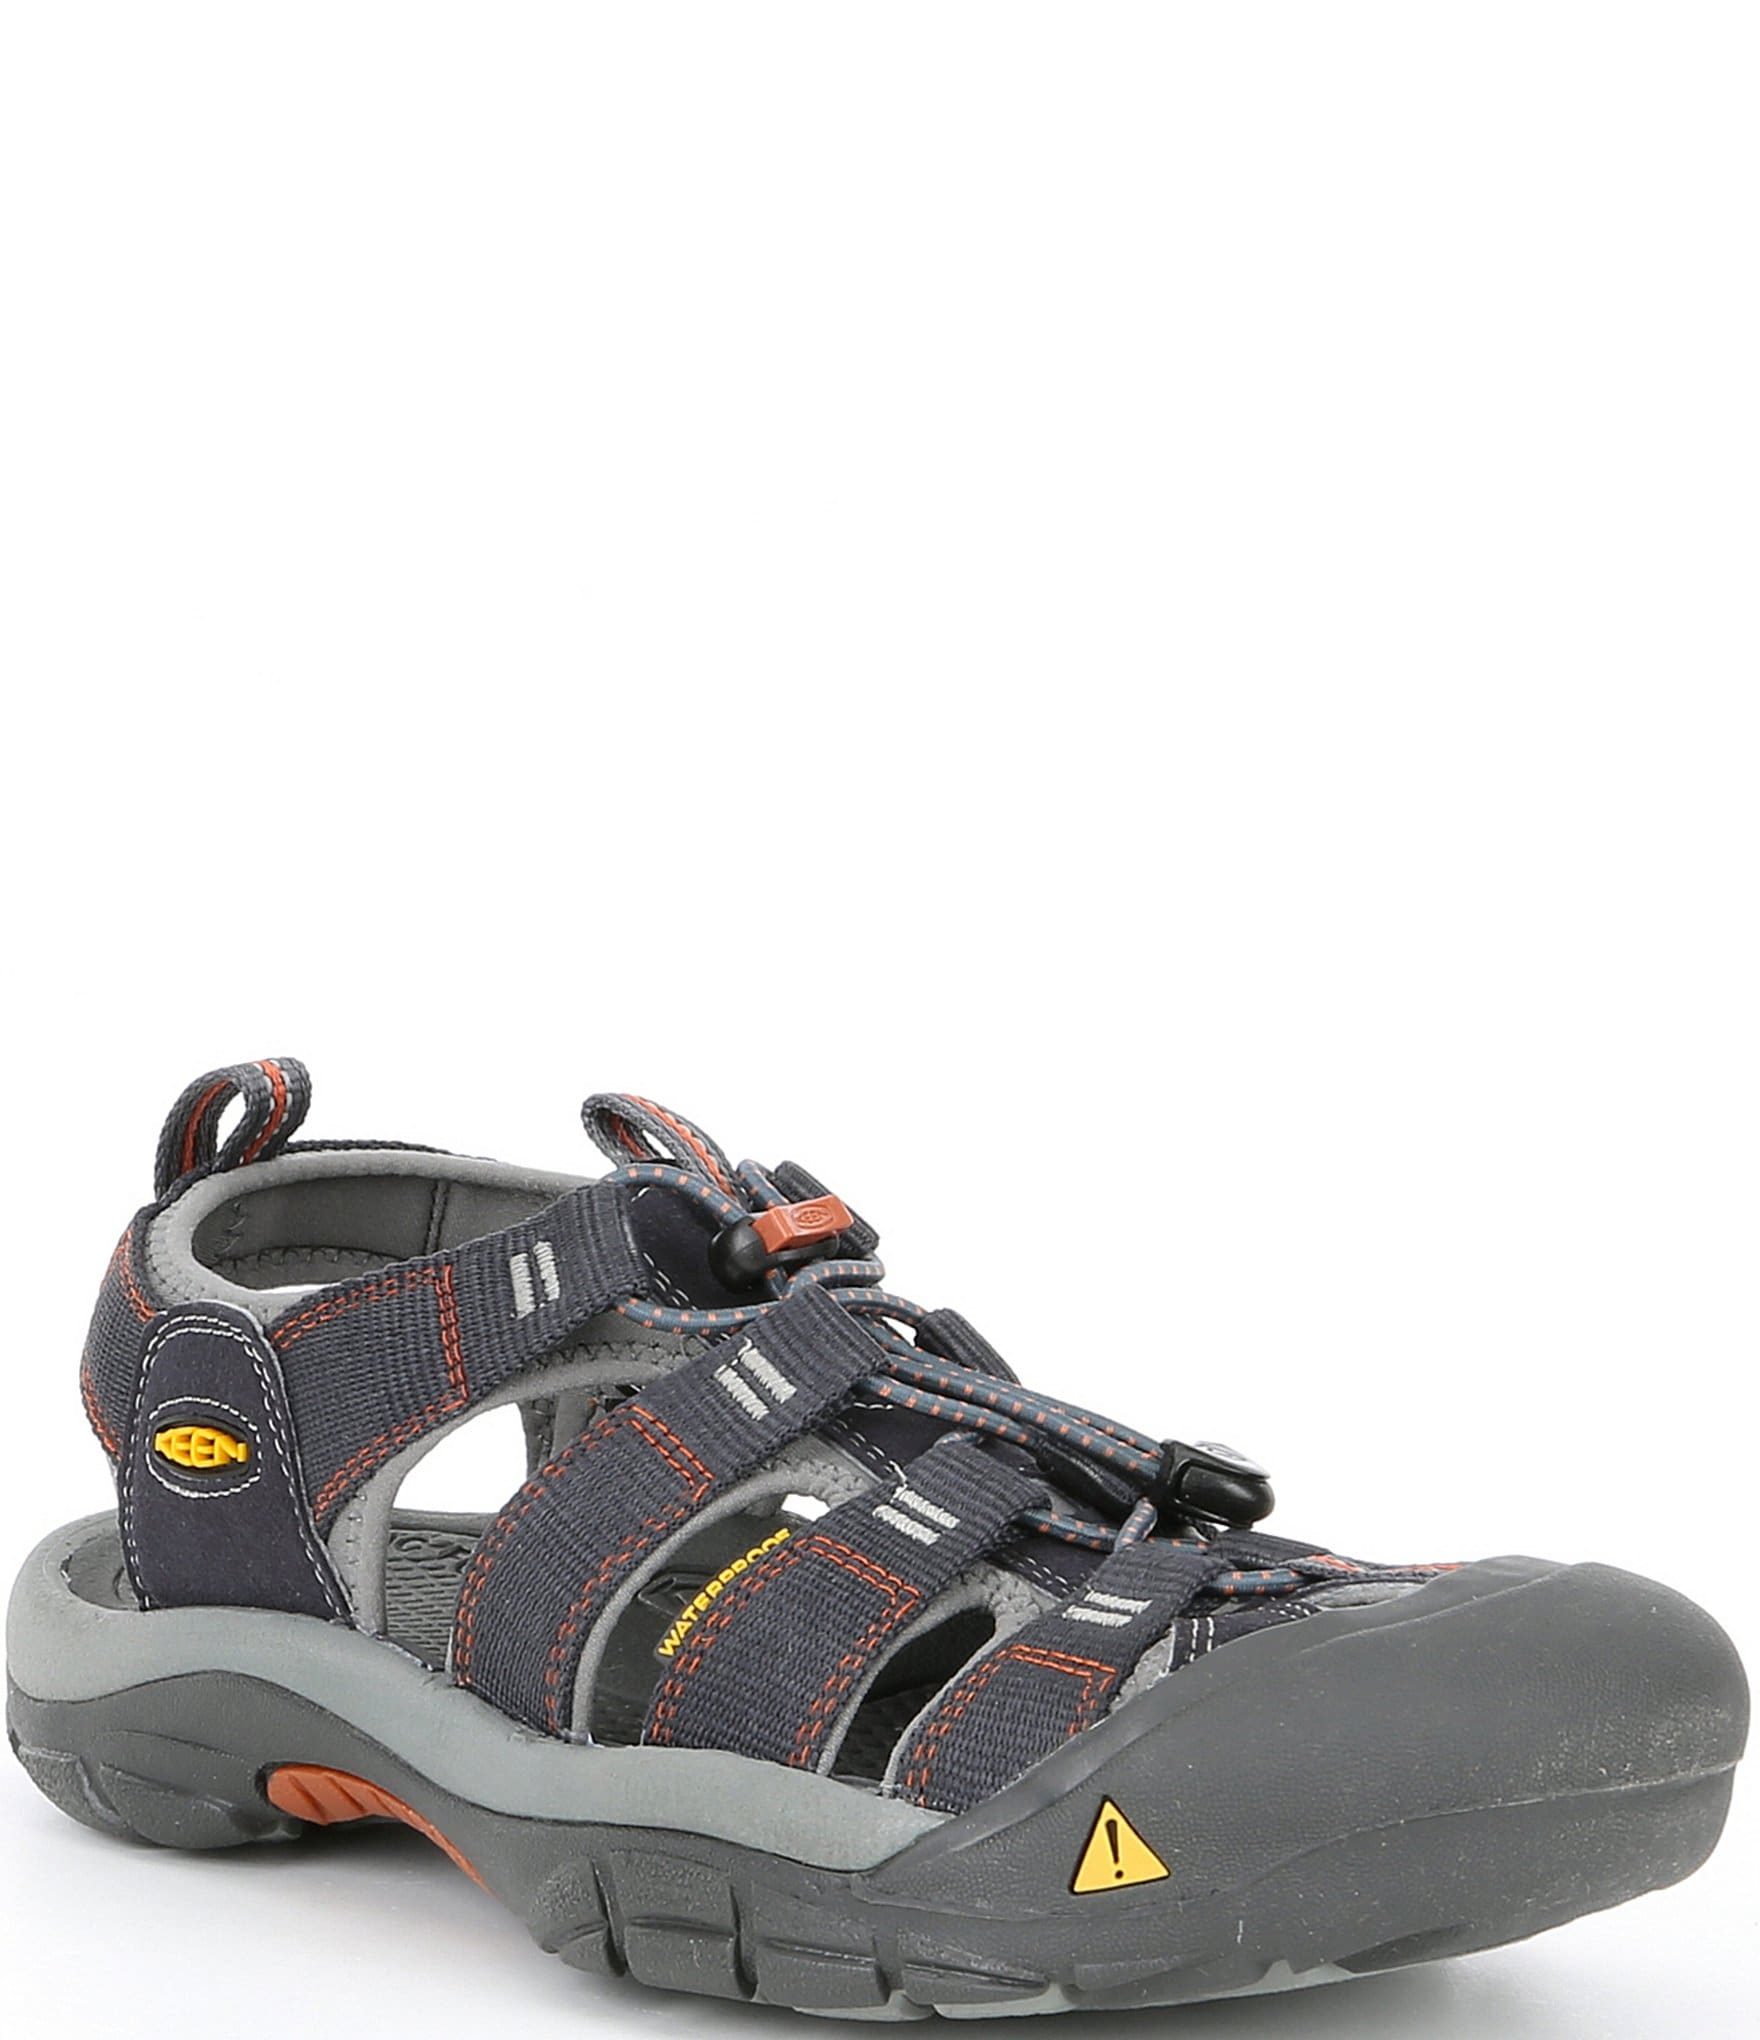 345a23eb8831 Keen Men s Outdoor Shoes